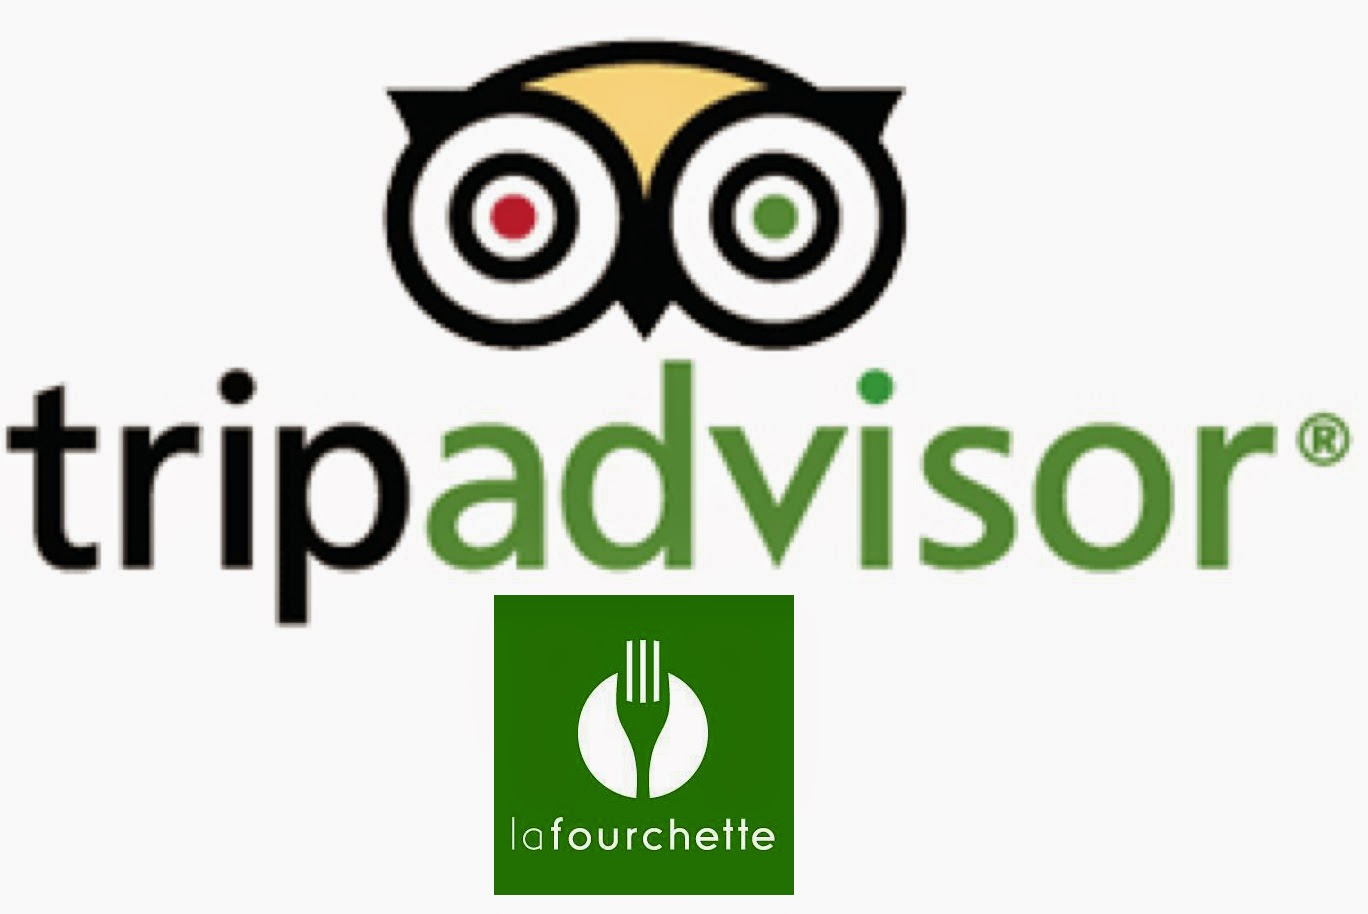 TripAdvisor, LaFourchette, start-up LaFourchette, TripAdvisor buys LaFourchette, TripAdvisor buys start-up LaFourchette, software, internet, TripAdvisor acquires LaFourchette,